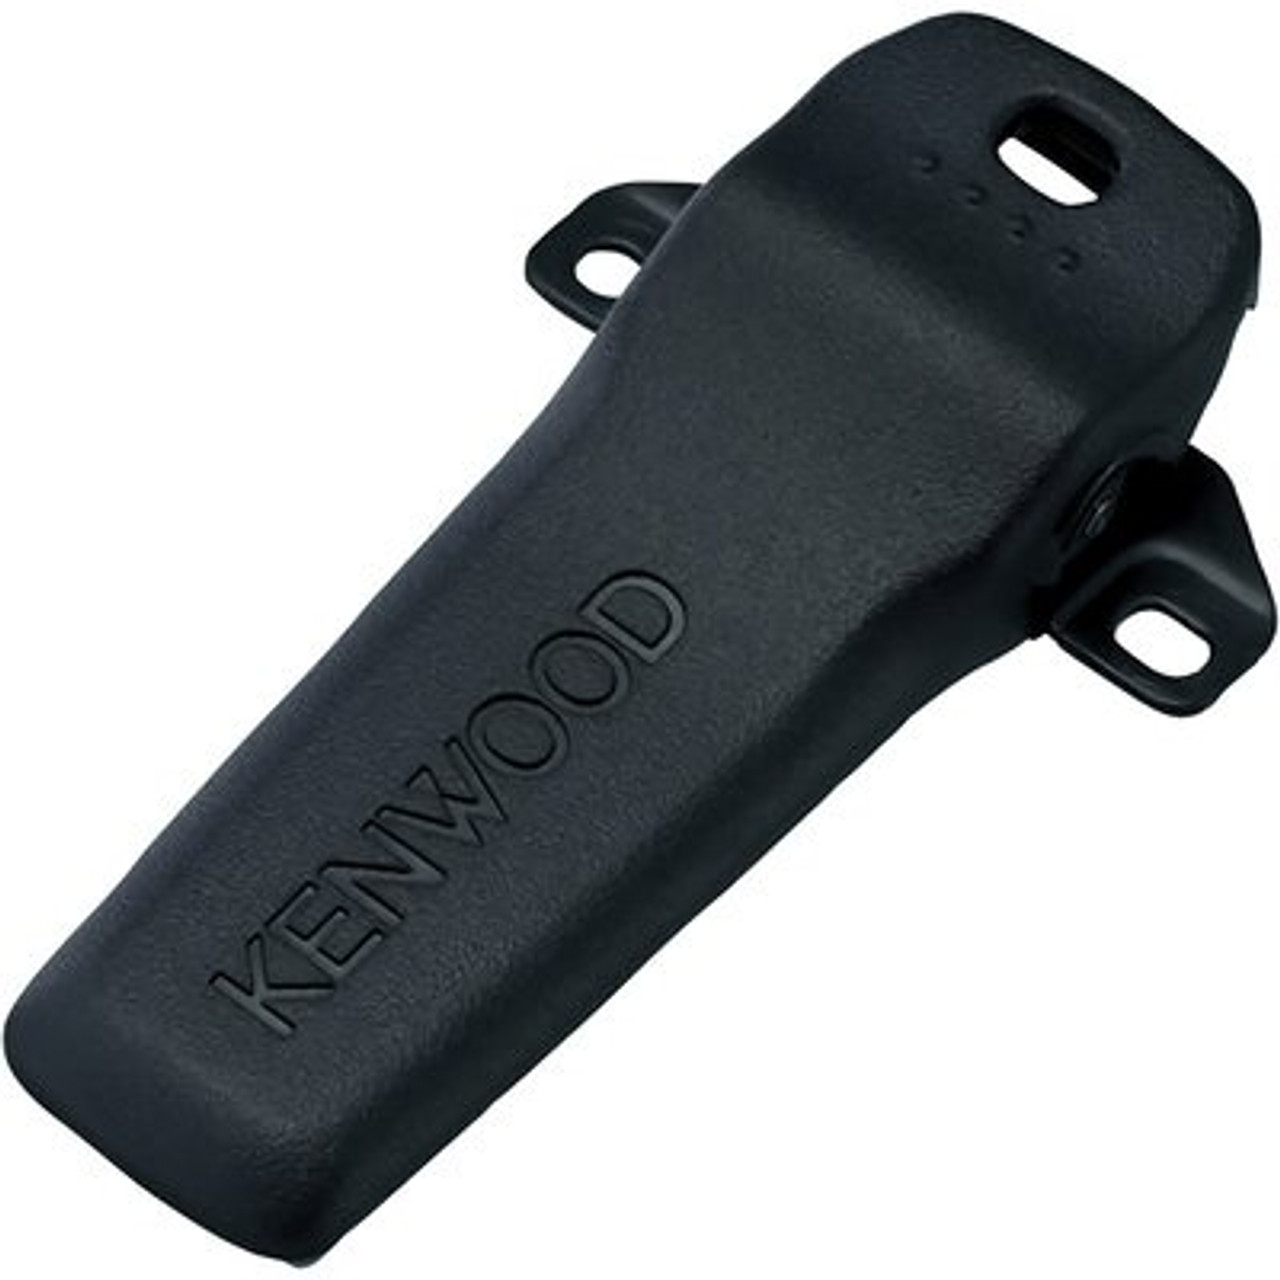 Kenwood KBH-22 Belt Clip for PKT-23 Series Two Way Radios